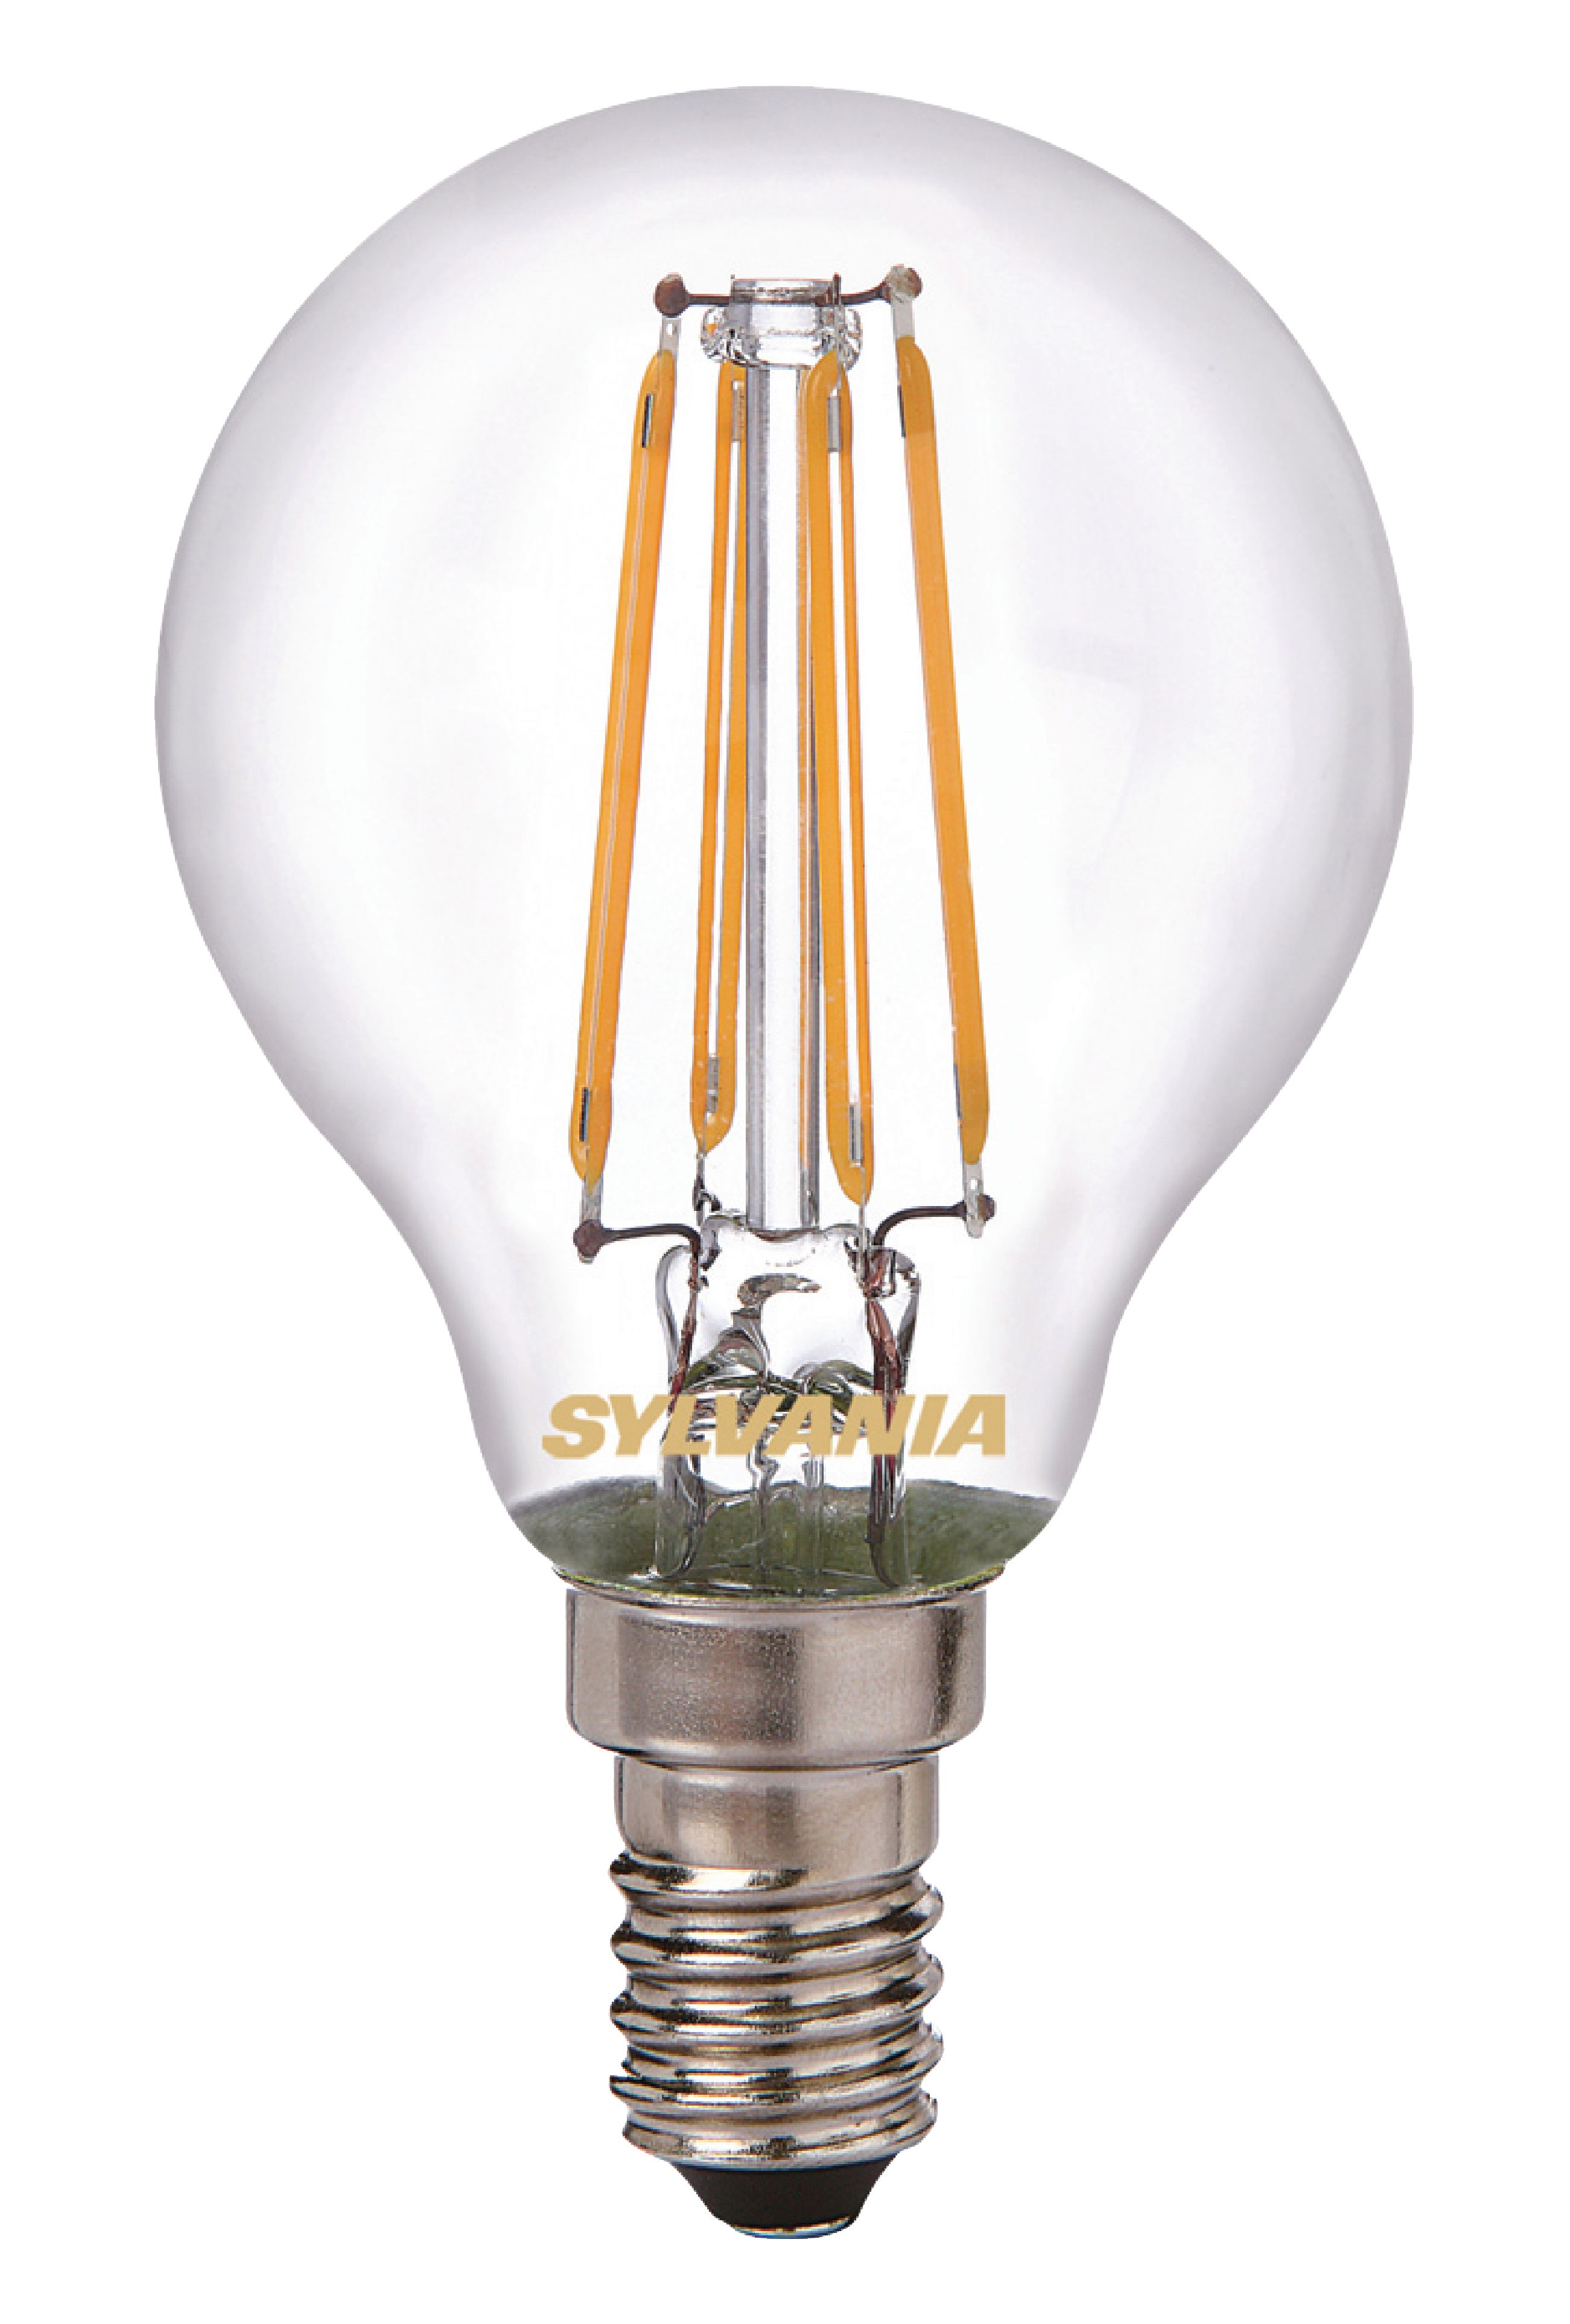 syl 0027246 sylvania led retro filament lamp e14 ball 4 w 420 lm 2700 k electronic. Black Bedroom Furniture Sets. Home Design Ideas